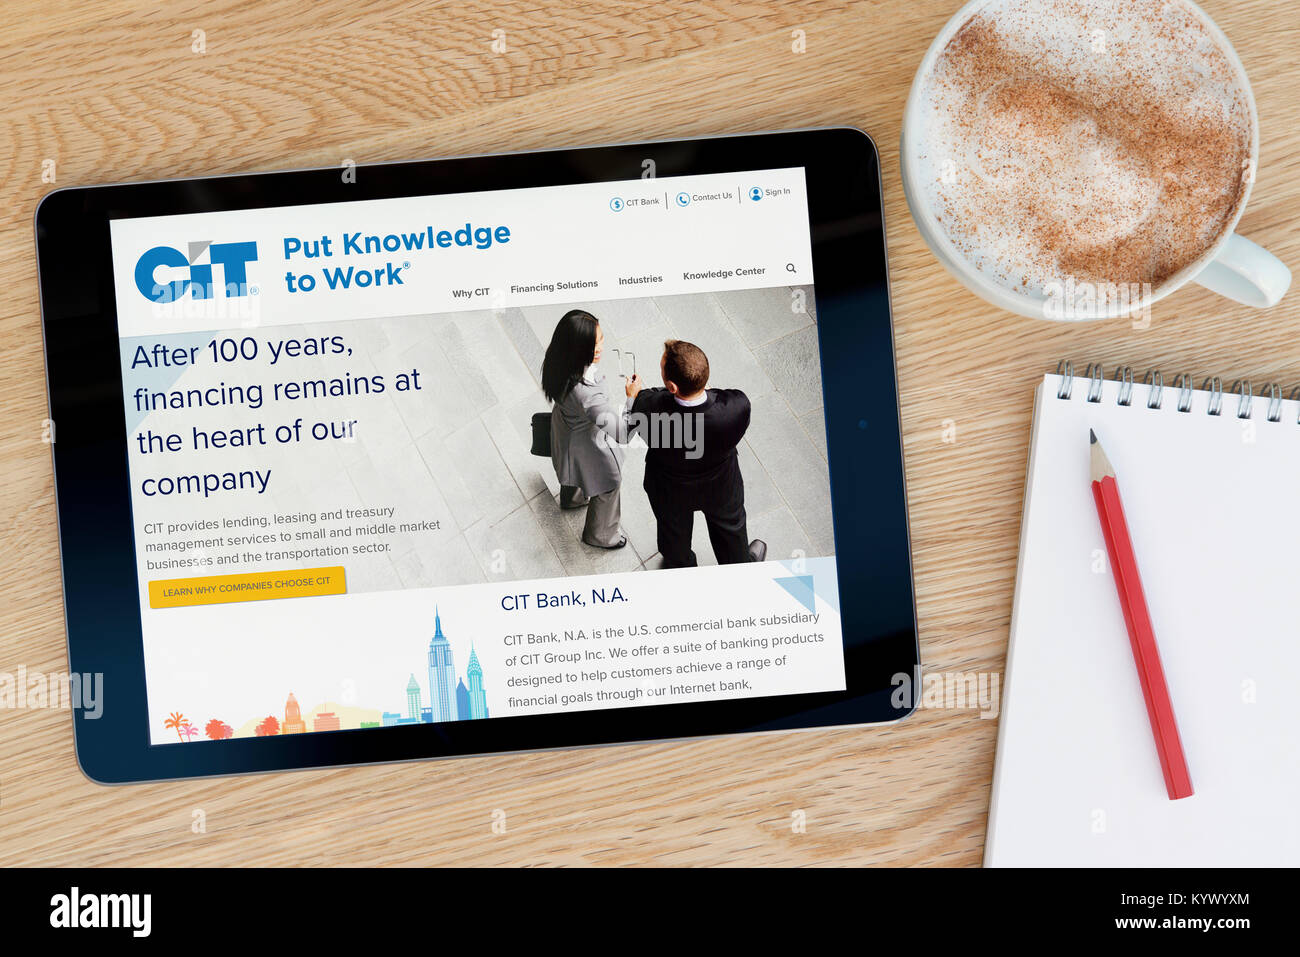 The CIT Group website on an iPad tablet, on a wooden table beside a notepad, pencil and cup of coffee (Editorial - Stock Image